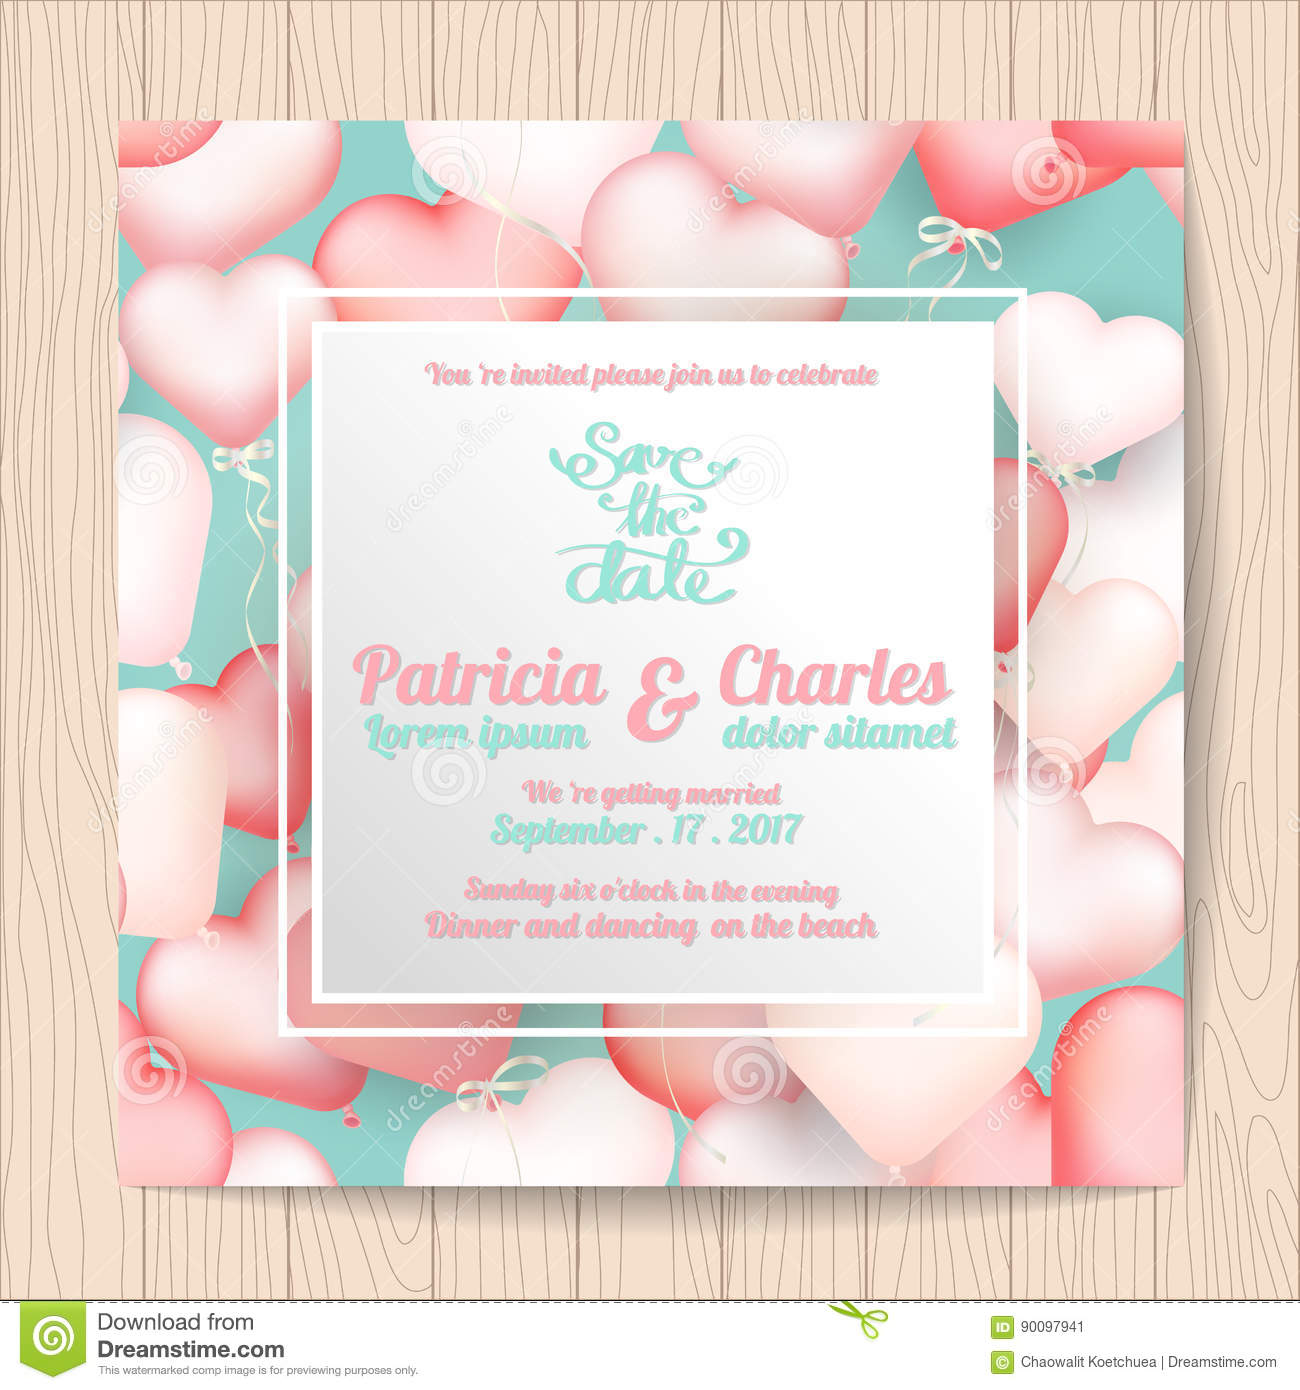 Wedding Invitation Card Templates, Sweet Heart Balloon Stock Vector ...